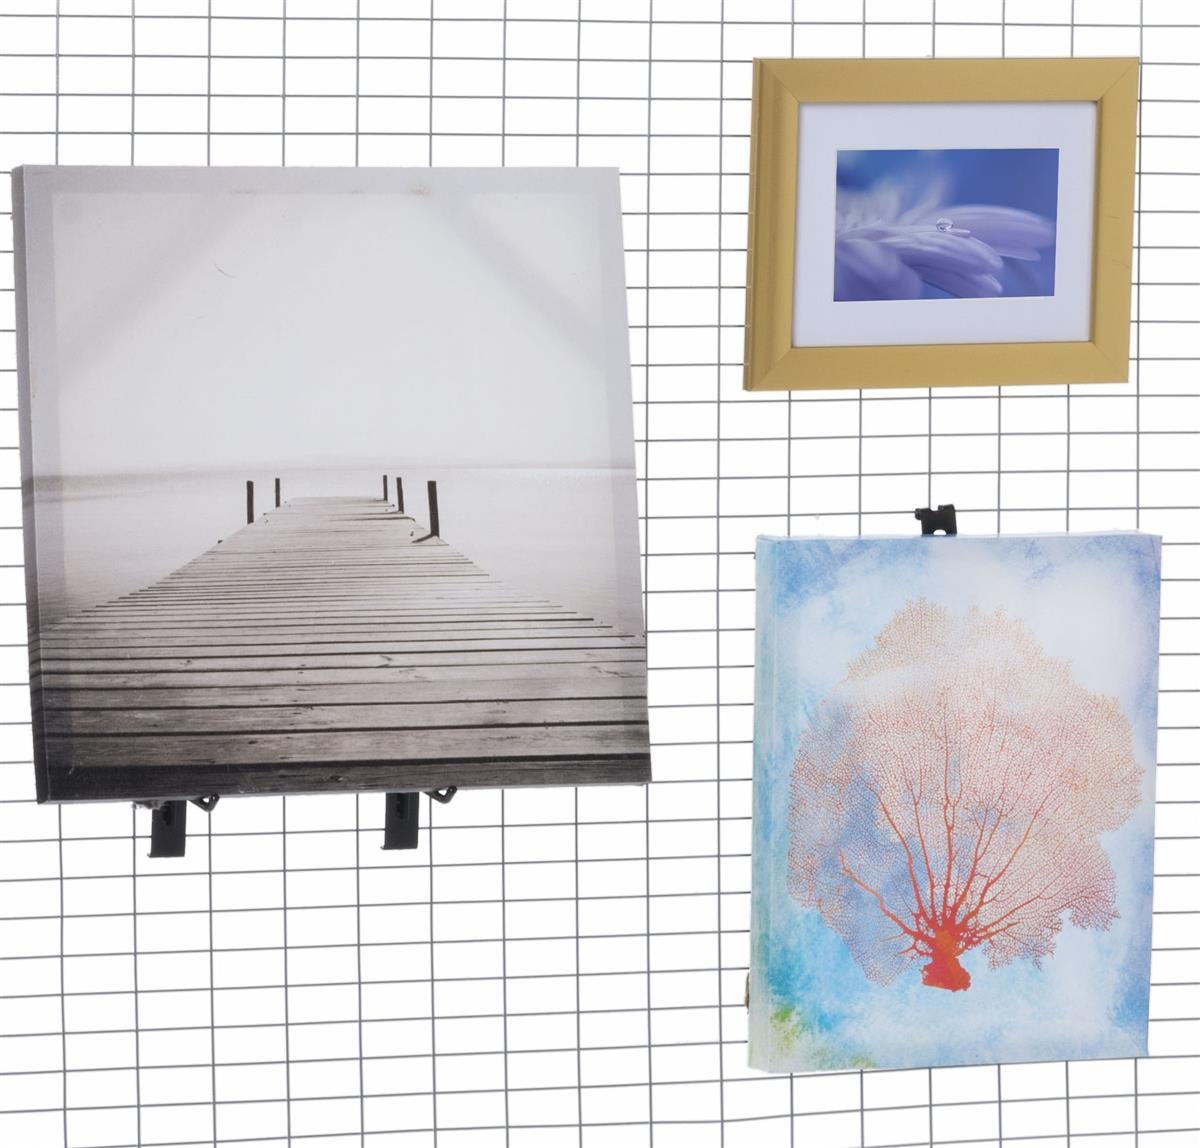 Displays2go Wire Grid Panel for Artwork, Iron Metal Construction, Powder Coated – Silver Finish (AD4PNLS) by Displays2go (Image #3)